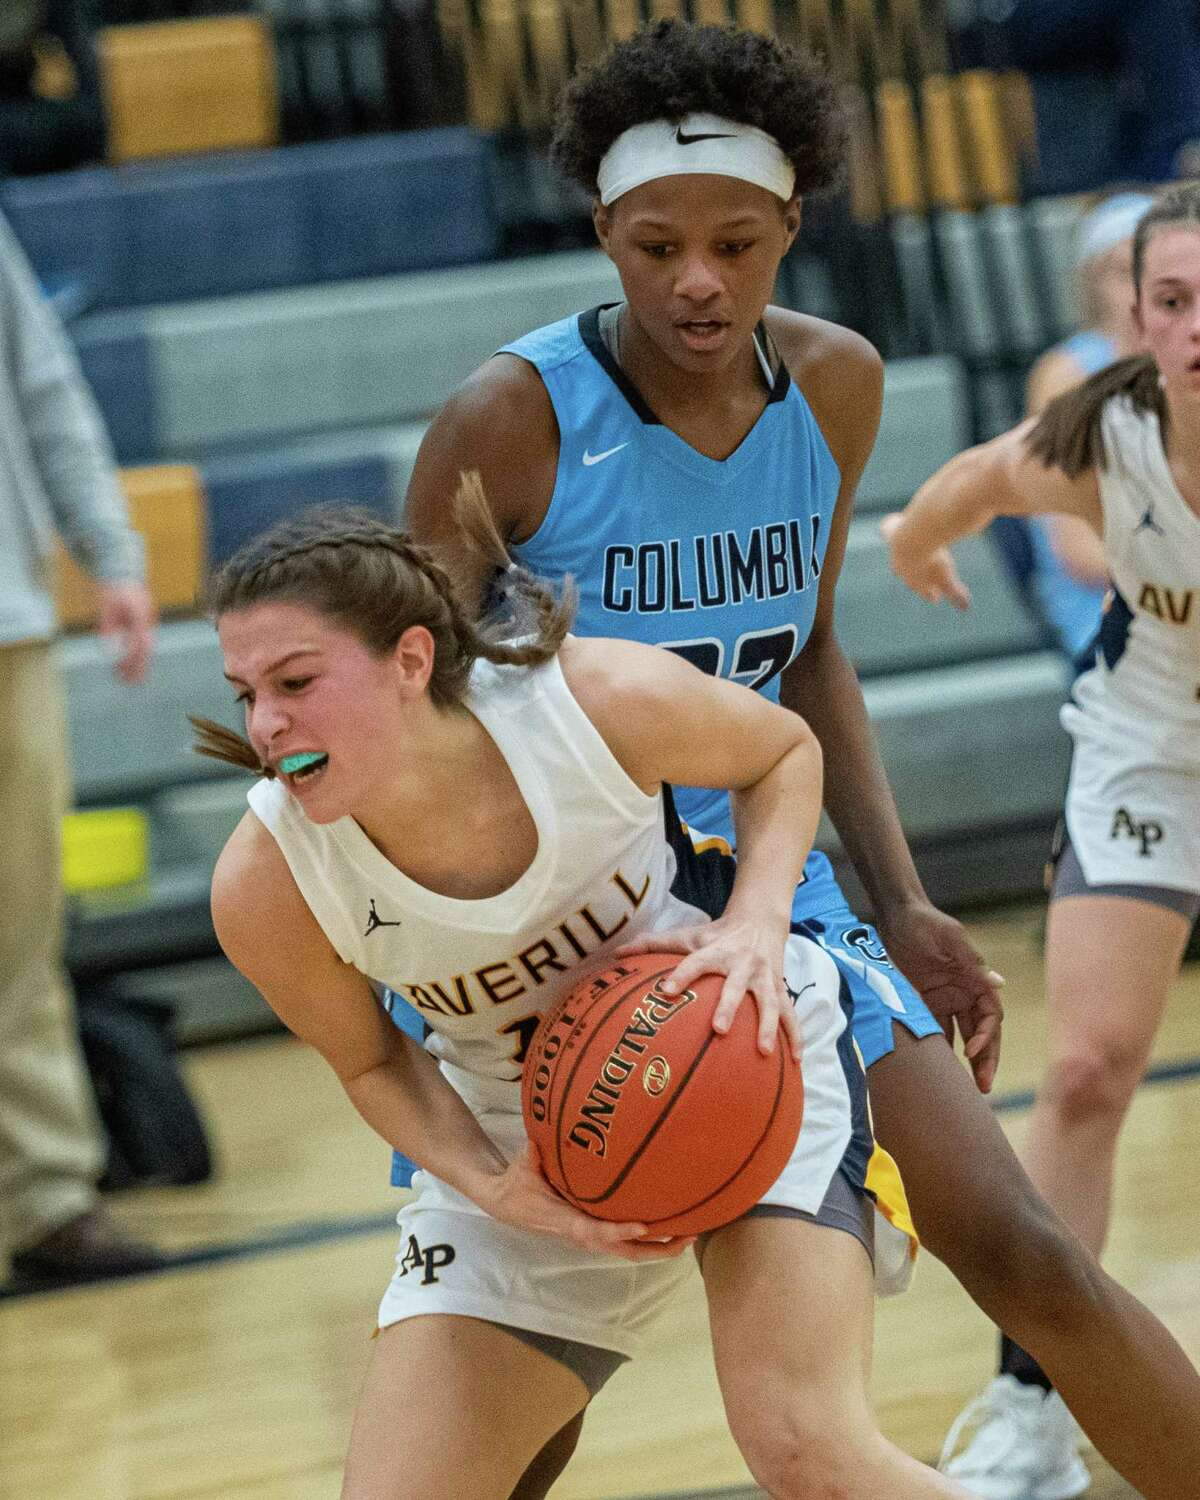 Averill Park forward Anna Jankovic grabs a rebound in front of Columbia forward Lauren Filien during the Averill Park Tip Off Tournament at Averill Park High School on Friday, Nov. 29, 2019 (Jim Franco/Special to the Times Union.)